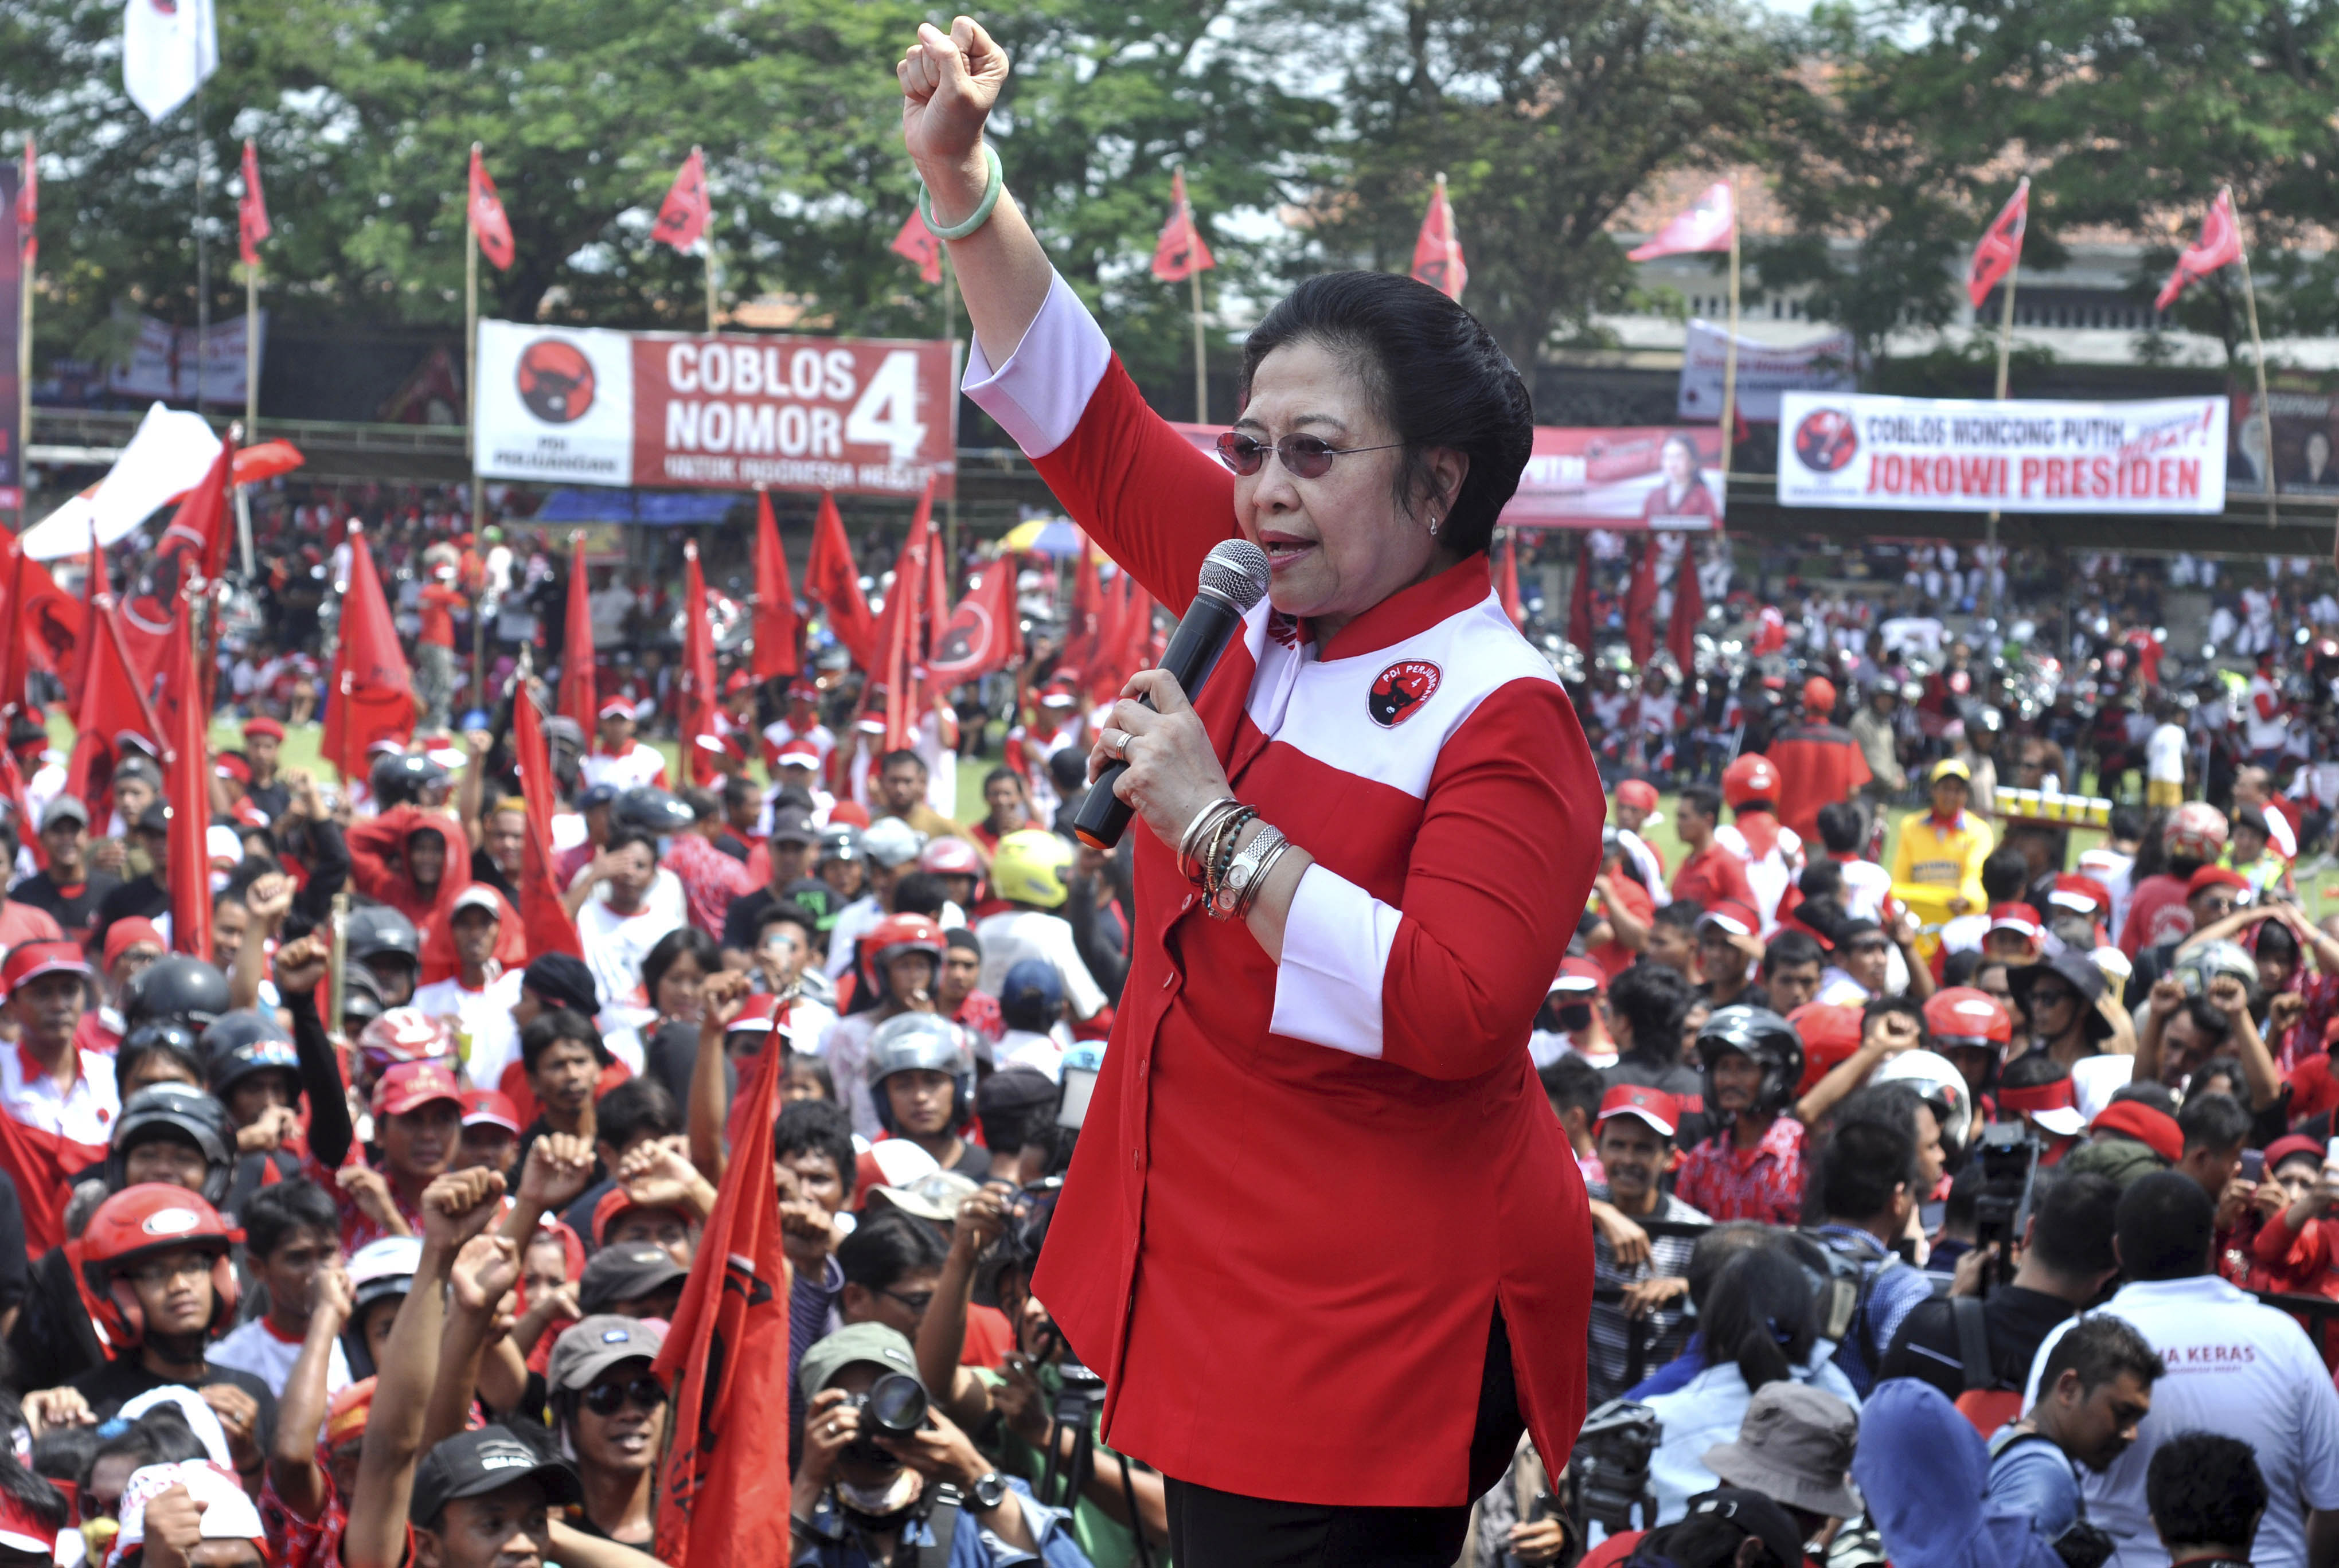 Indonesian Democratic Party of Struggle chairwoman Megawati Sukarnoputri shouts slogans during a campaign rally in the Indonesian town of Klaten on April 5, 2014